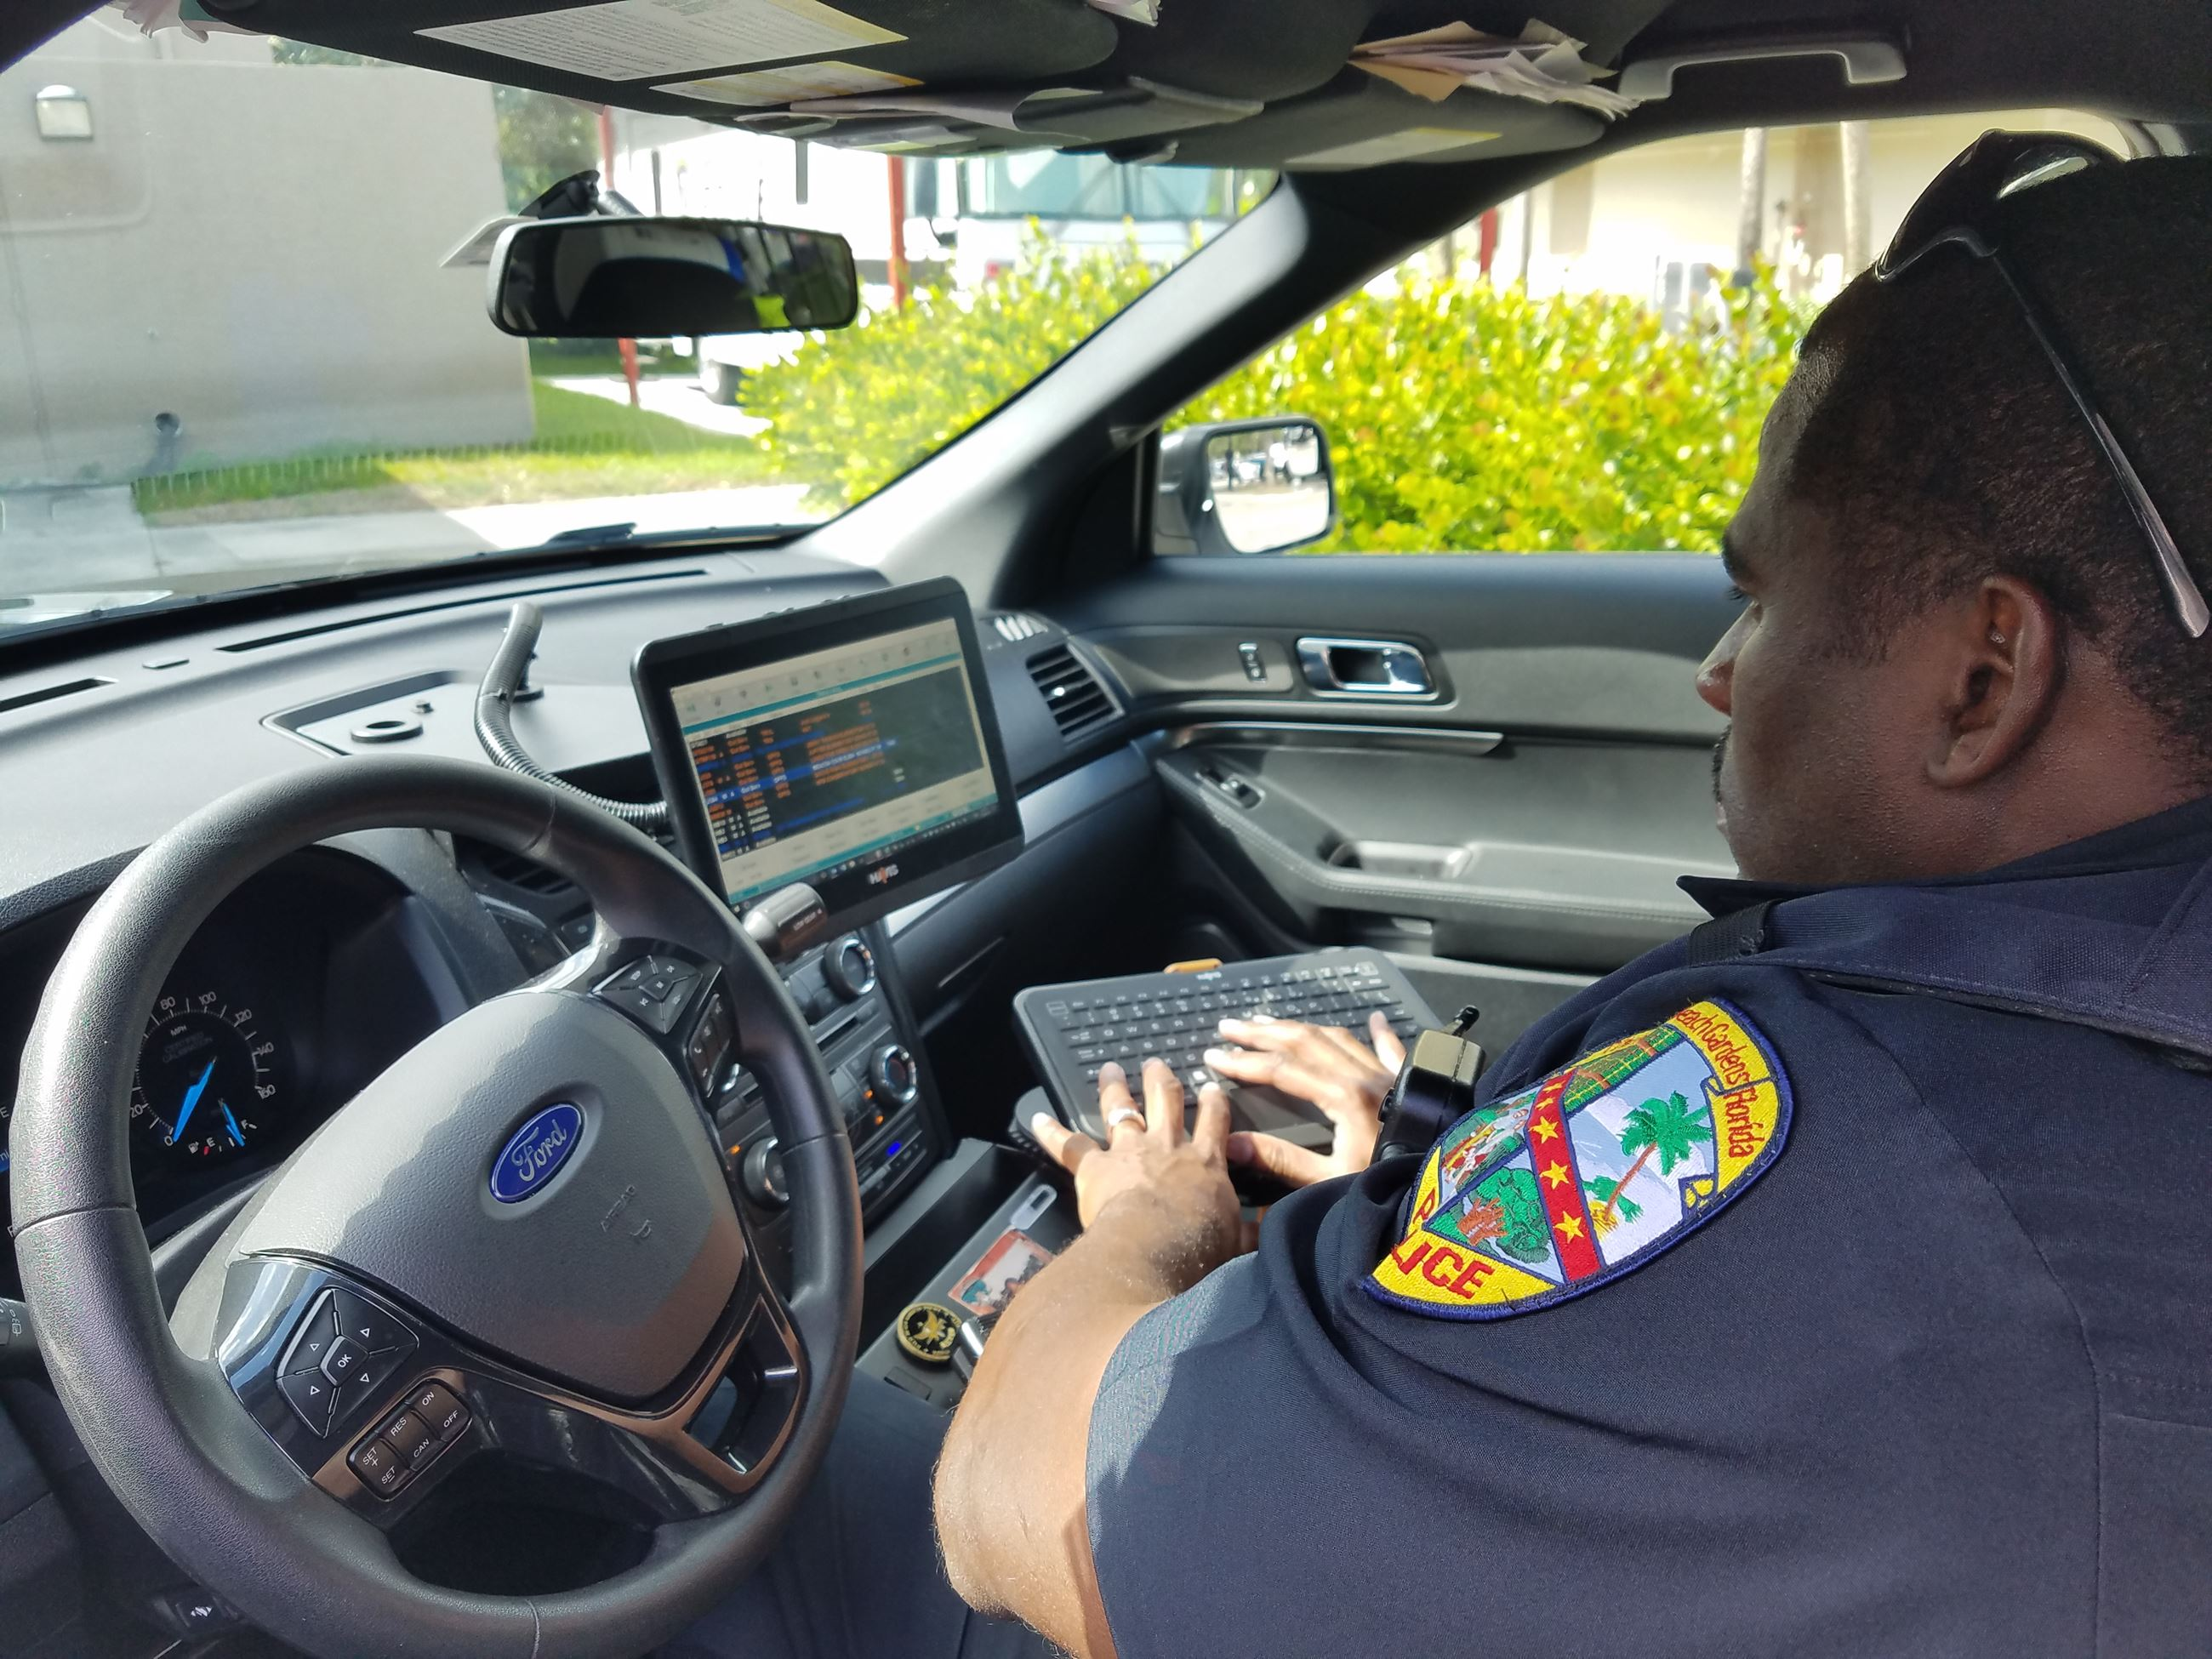 Police officer using in-car computer